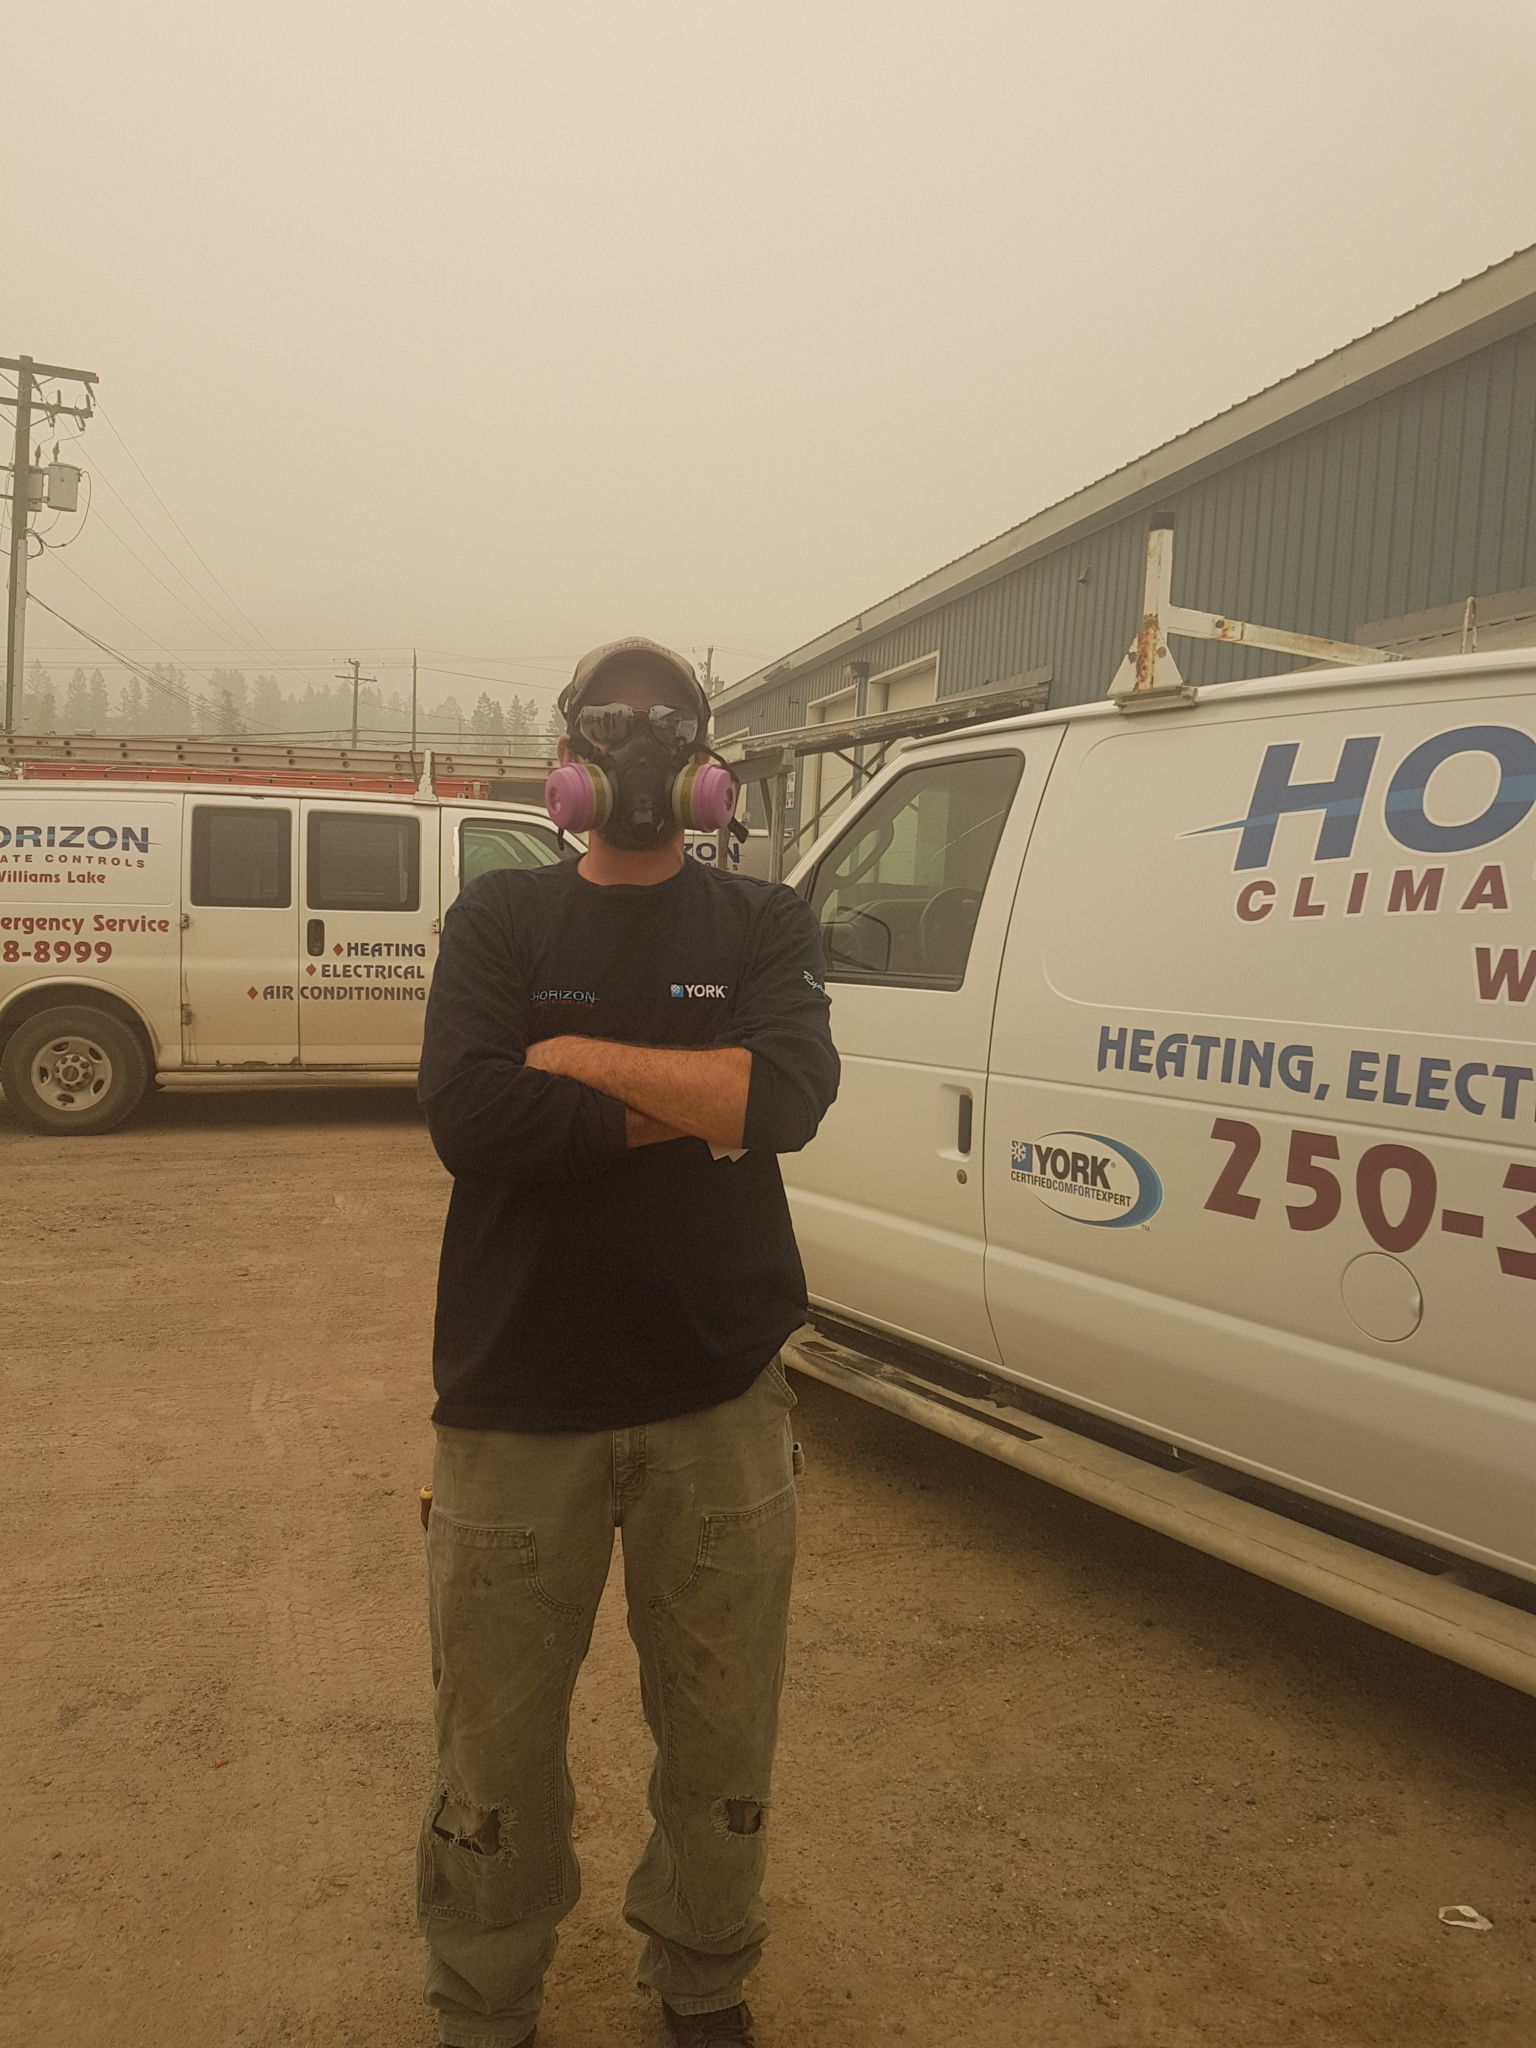 Horizon Climate Controls Ltd in Williams Lake: August 22, 2018 Safety precaution from the foest fires